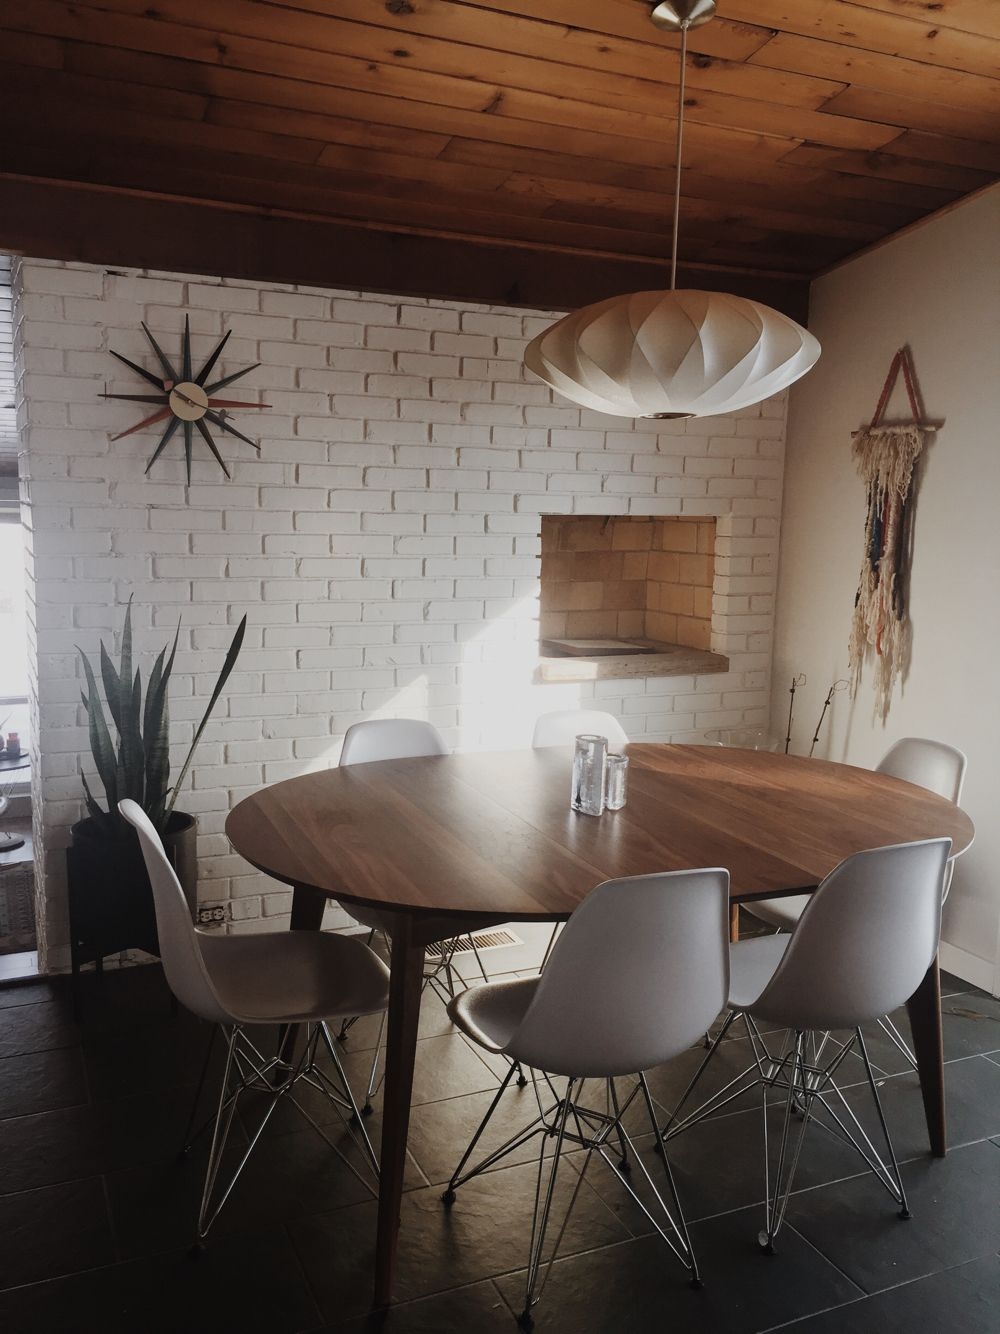 Dining Room. George Nelson Criss Cross Saucer Light Fixture From Modernica. Room  And Board Ventura Dining Table In Walnut. Case Study Ceramic Cylinder ...